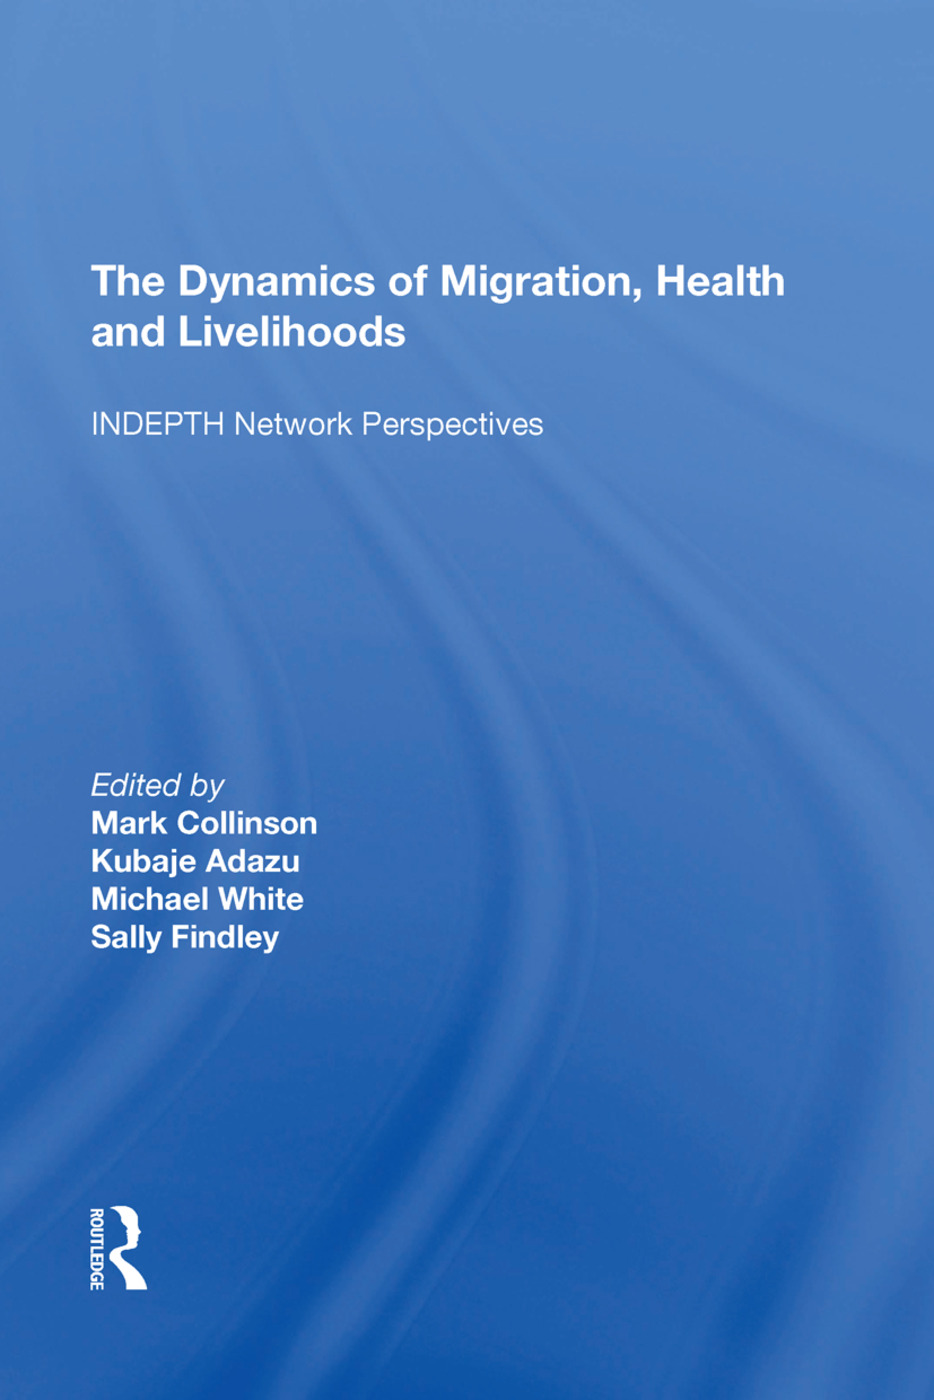 The Dynamics of Migration, Health and Livelihoods